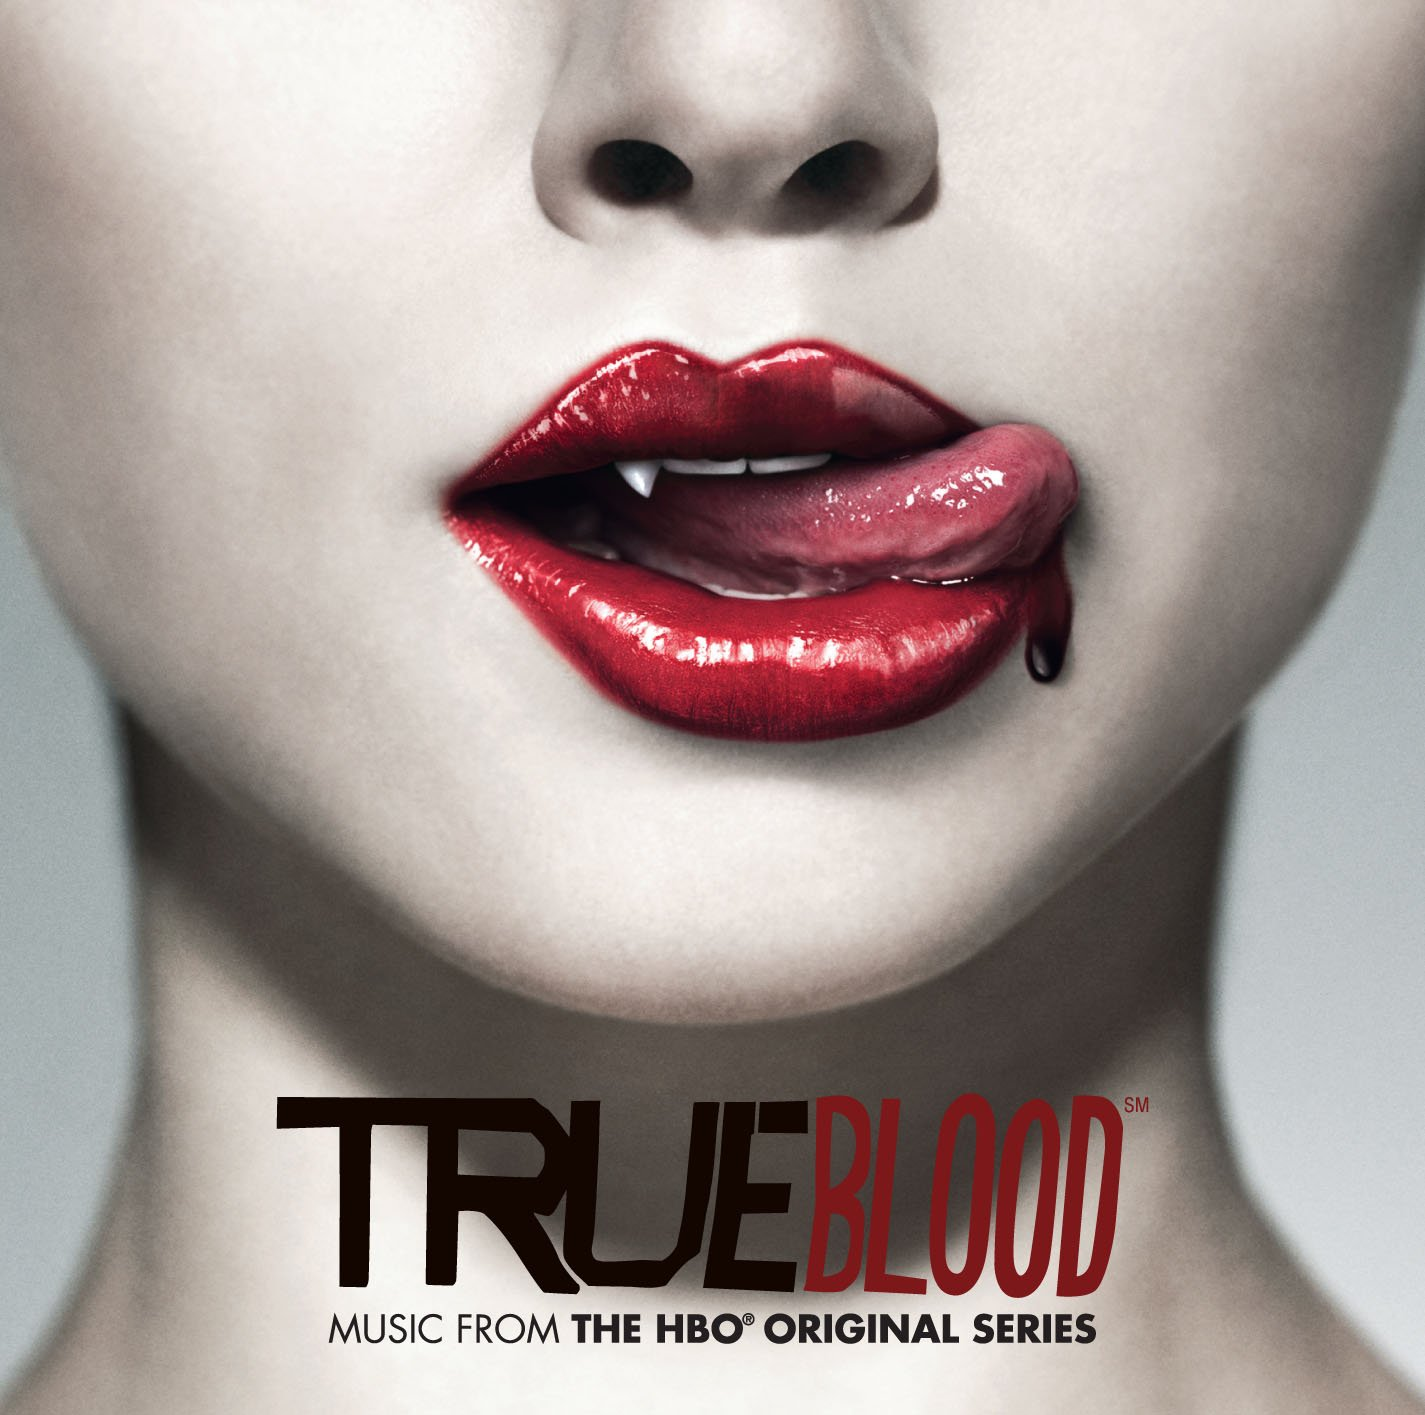 true blood theme song mp3 free download